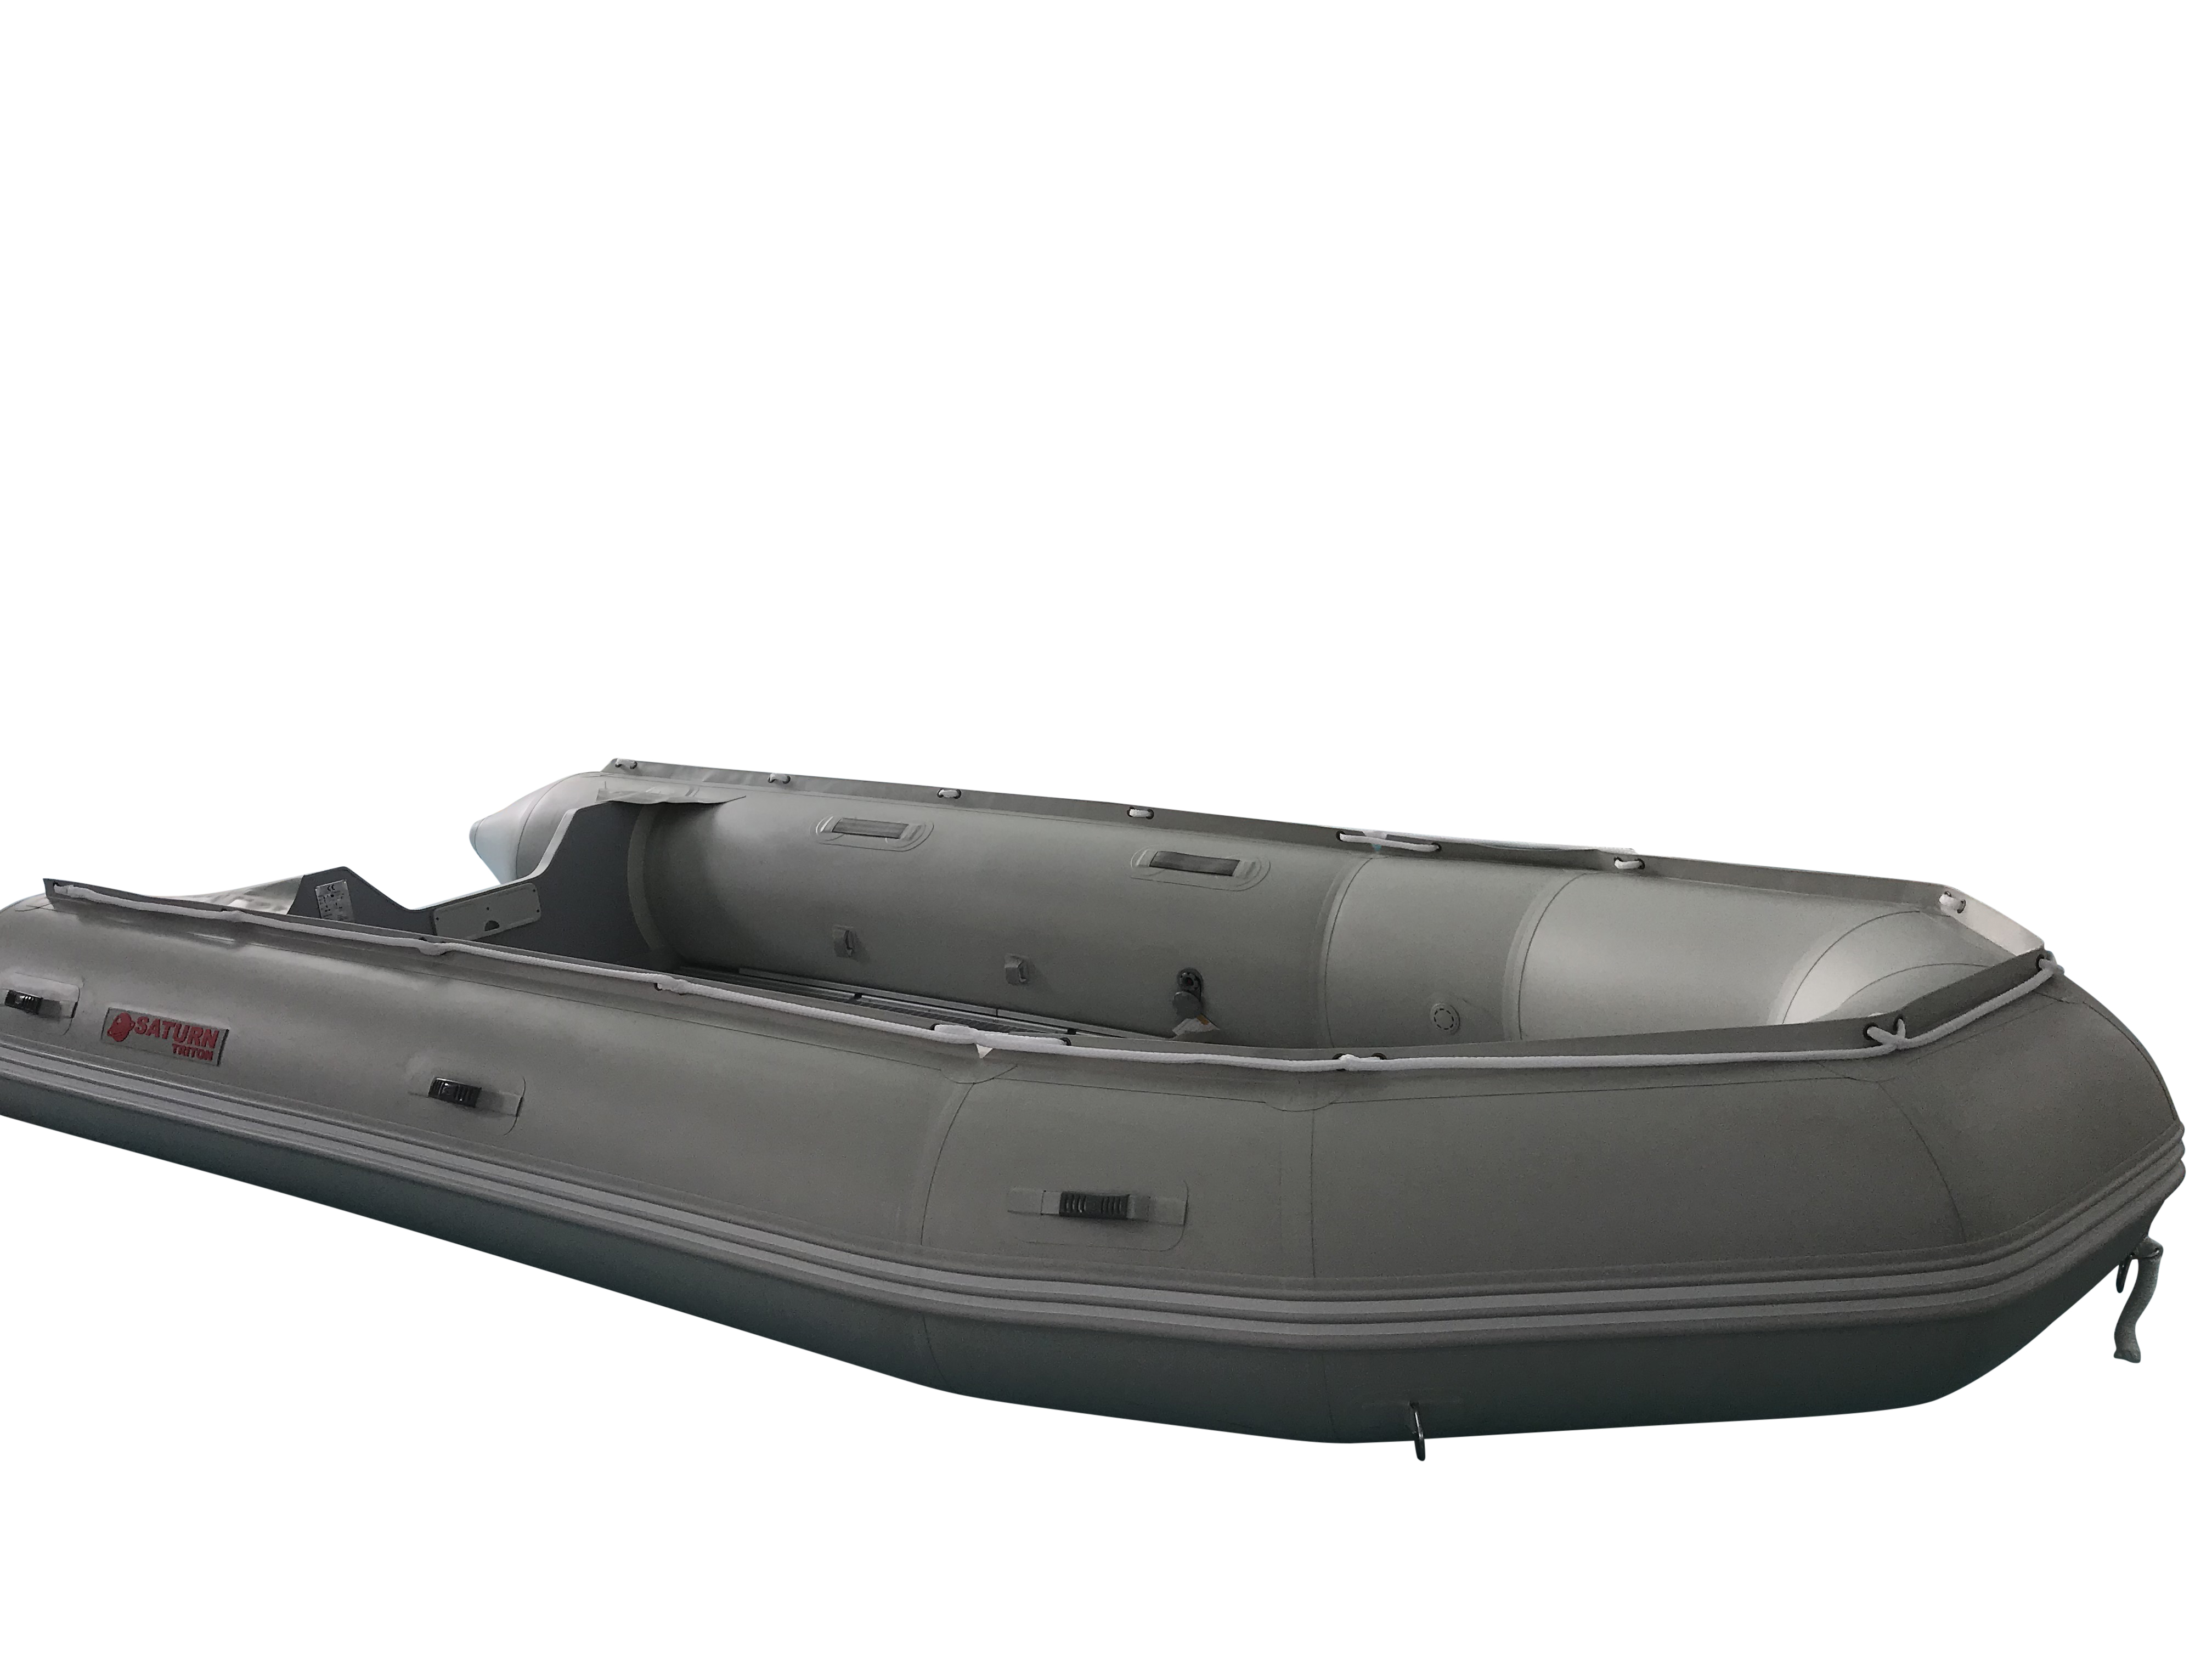 14' Saturn Triton Series Inflatable Boat